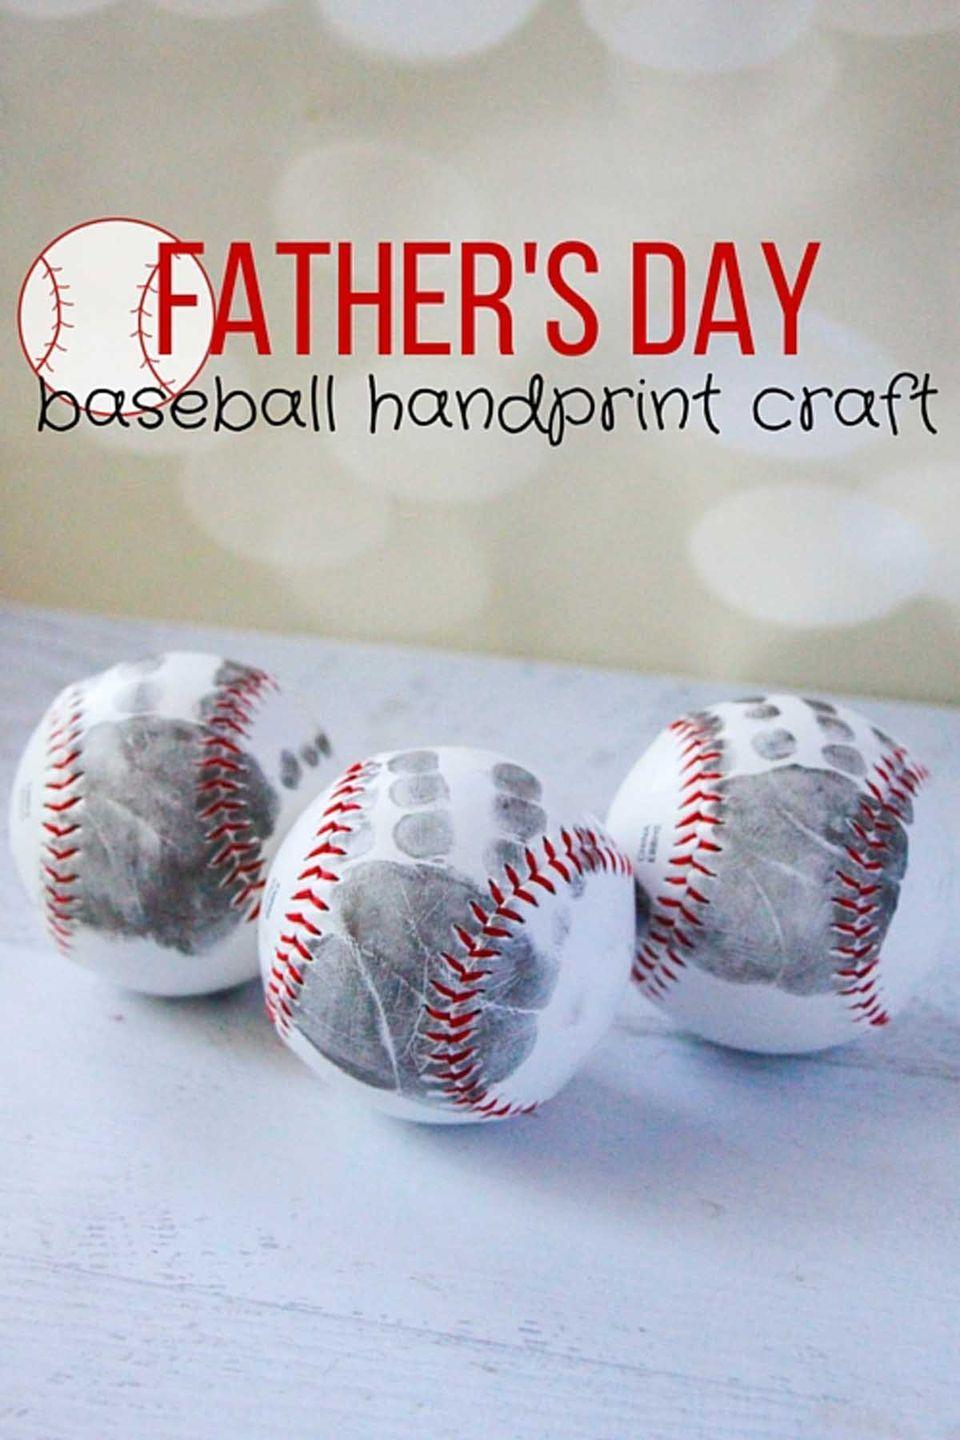 """<p>Knock Father's day out of the park with this sentimental gift idea.</p><p><em><strong>Get the tutorial at </strong><a href=""""http://thekindergartenconnection.com/fathers-day-baseball-craft/"""" rel=""""nofollow noopener"""" target=""""_blank"""" data-ylk=""""slk:The Kindergarten Connection"""" class=""""link rapid-noclick-resp""""><strong>The Kindergarten Connection</strong></a><strong>. </strong></em></p>"""